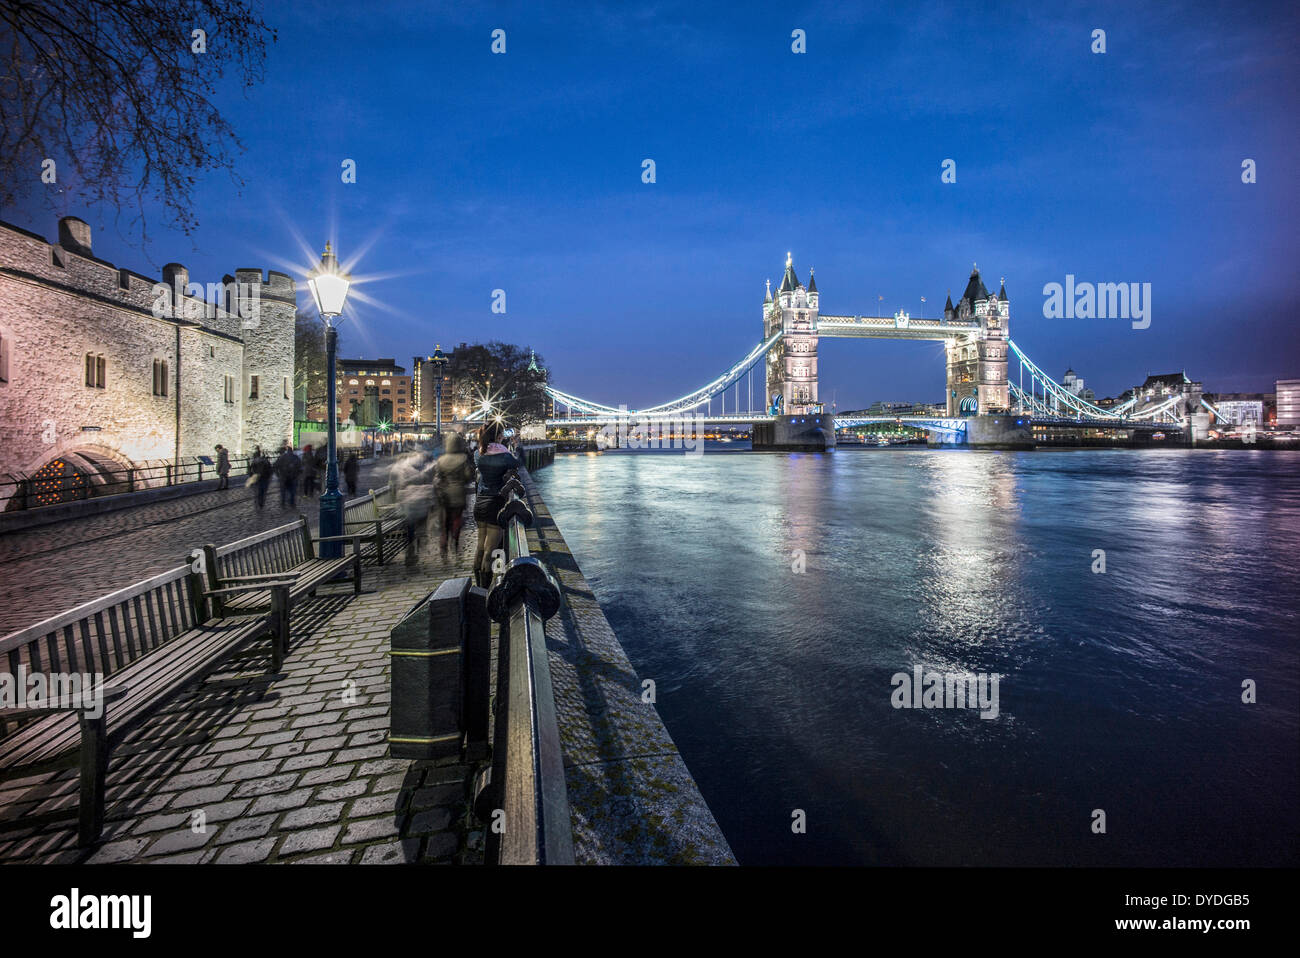 Tower Bridge and The Tower of London at dusk. - Stock Image